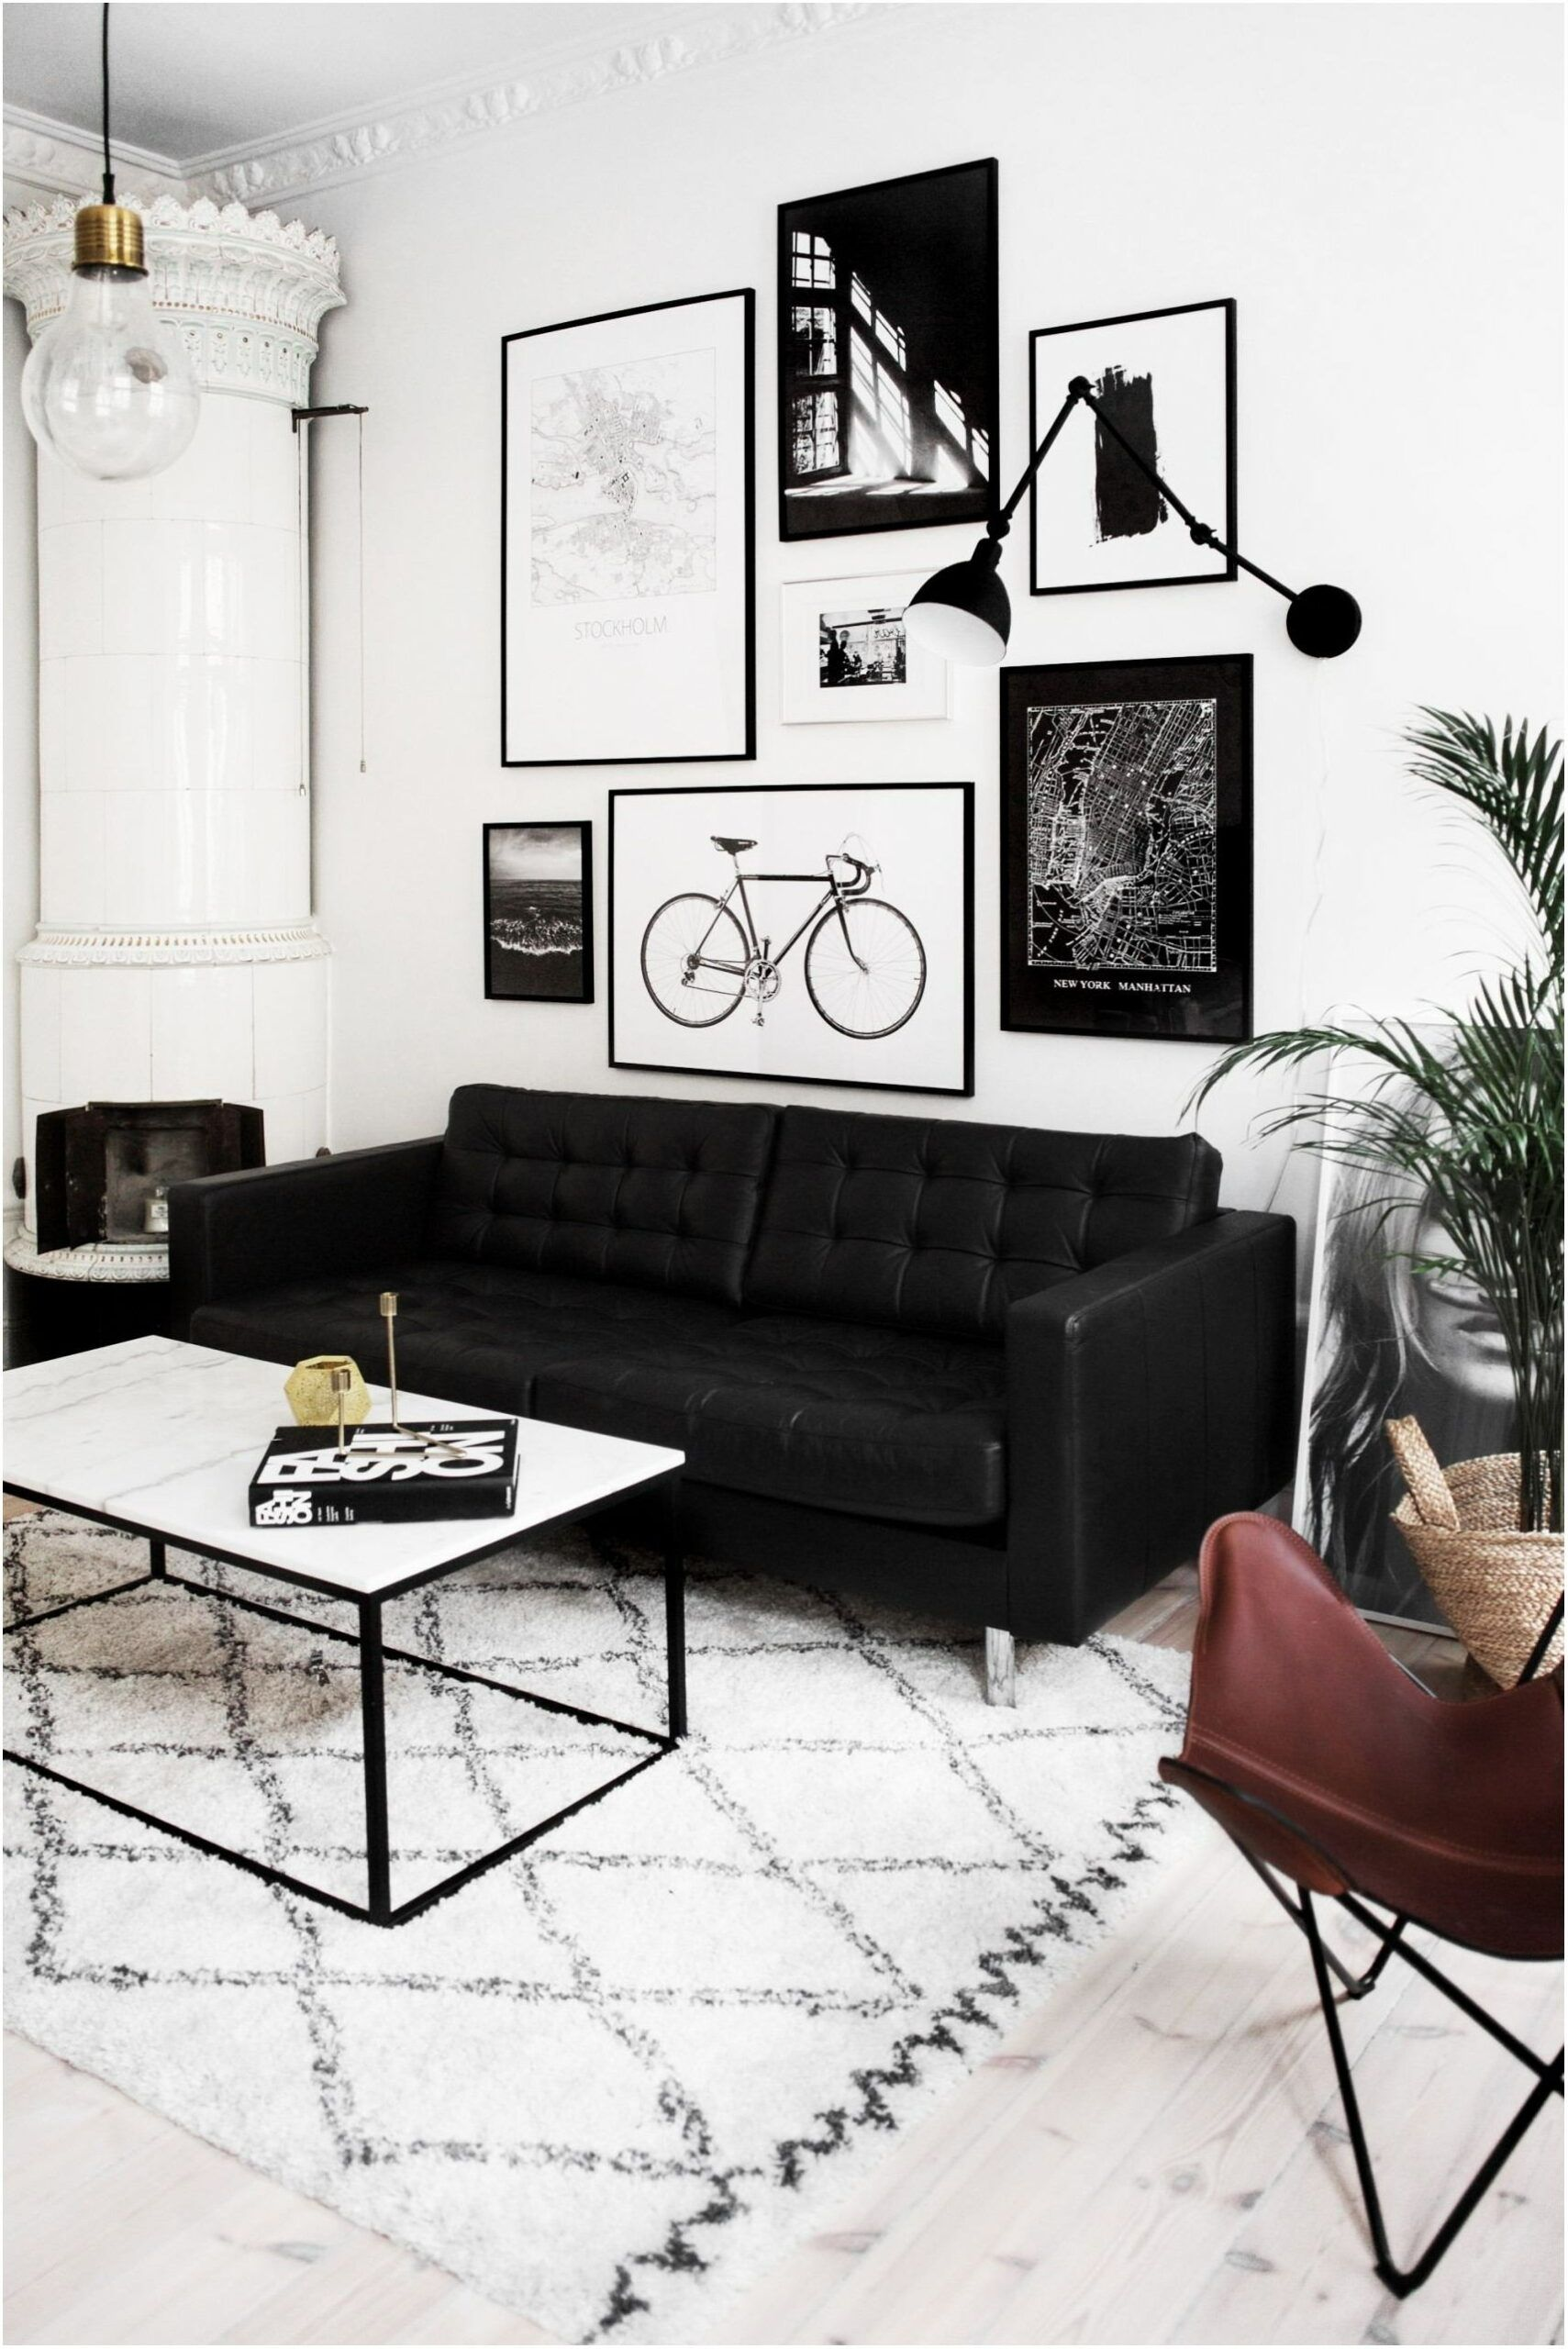 Interior Design Small Living Room Black Couch Black And White